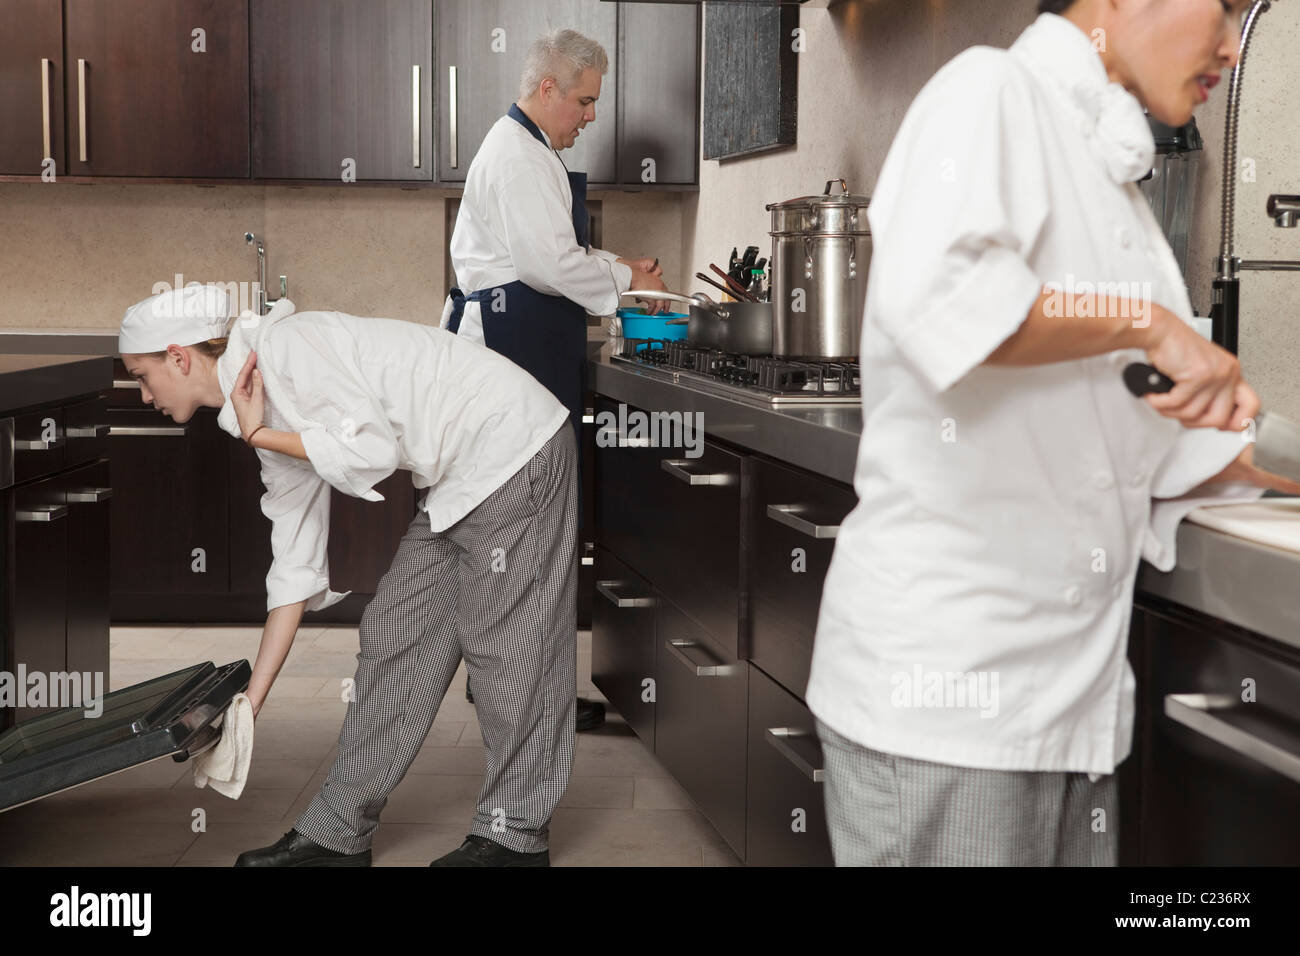 Busy Kitchen three chefs work together in busy kitchen stock photo, royalty